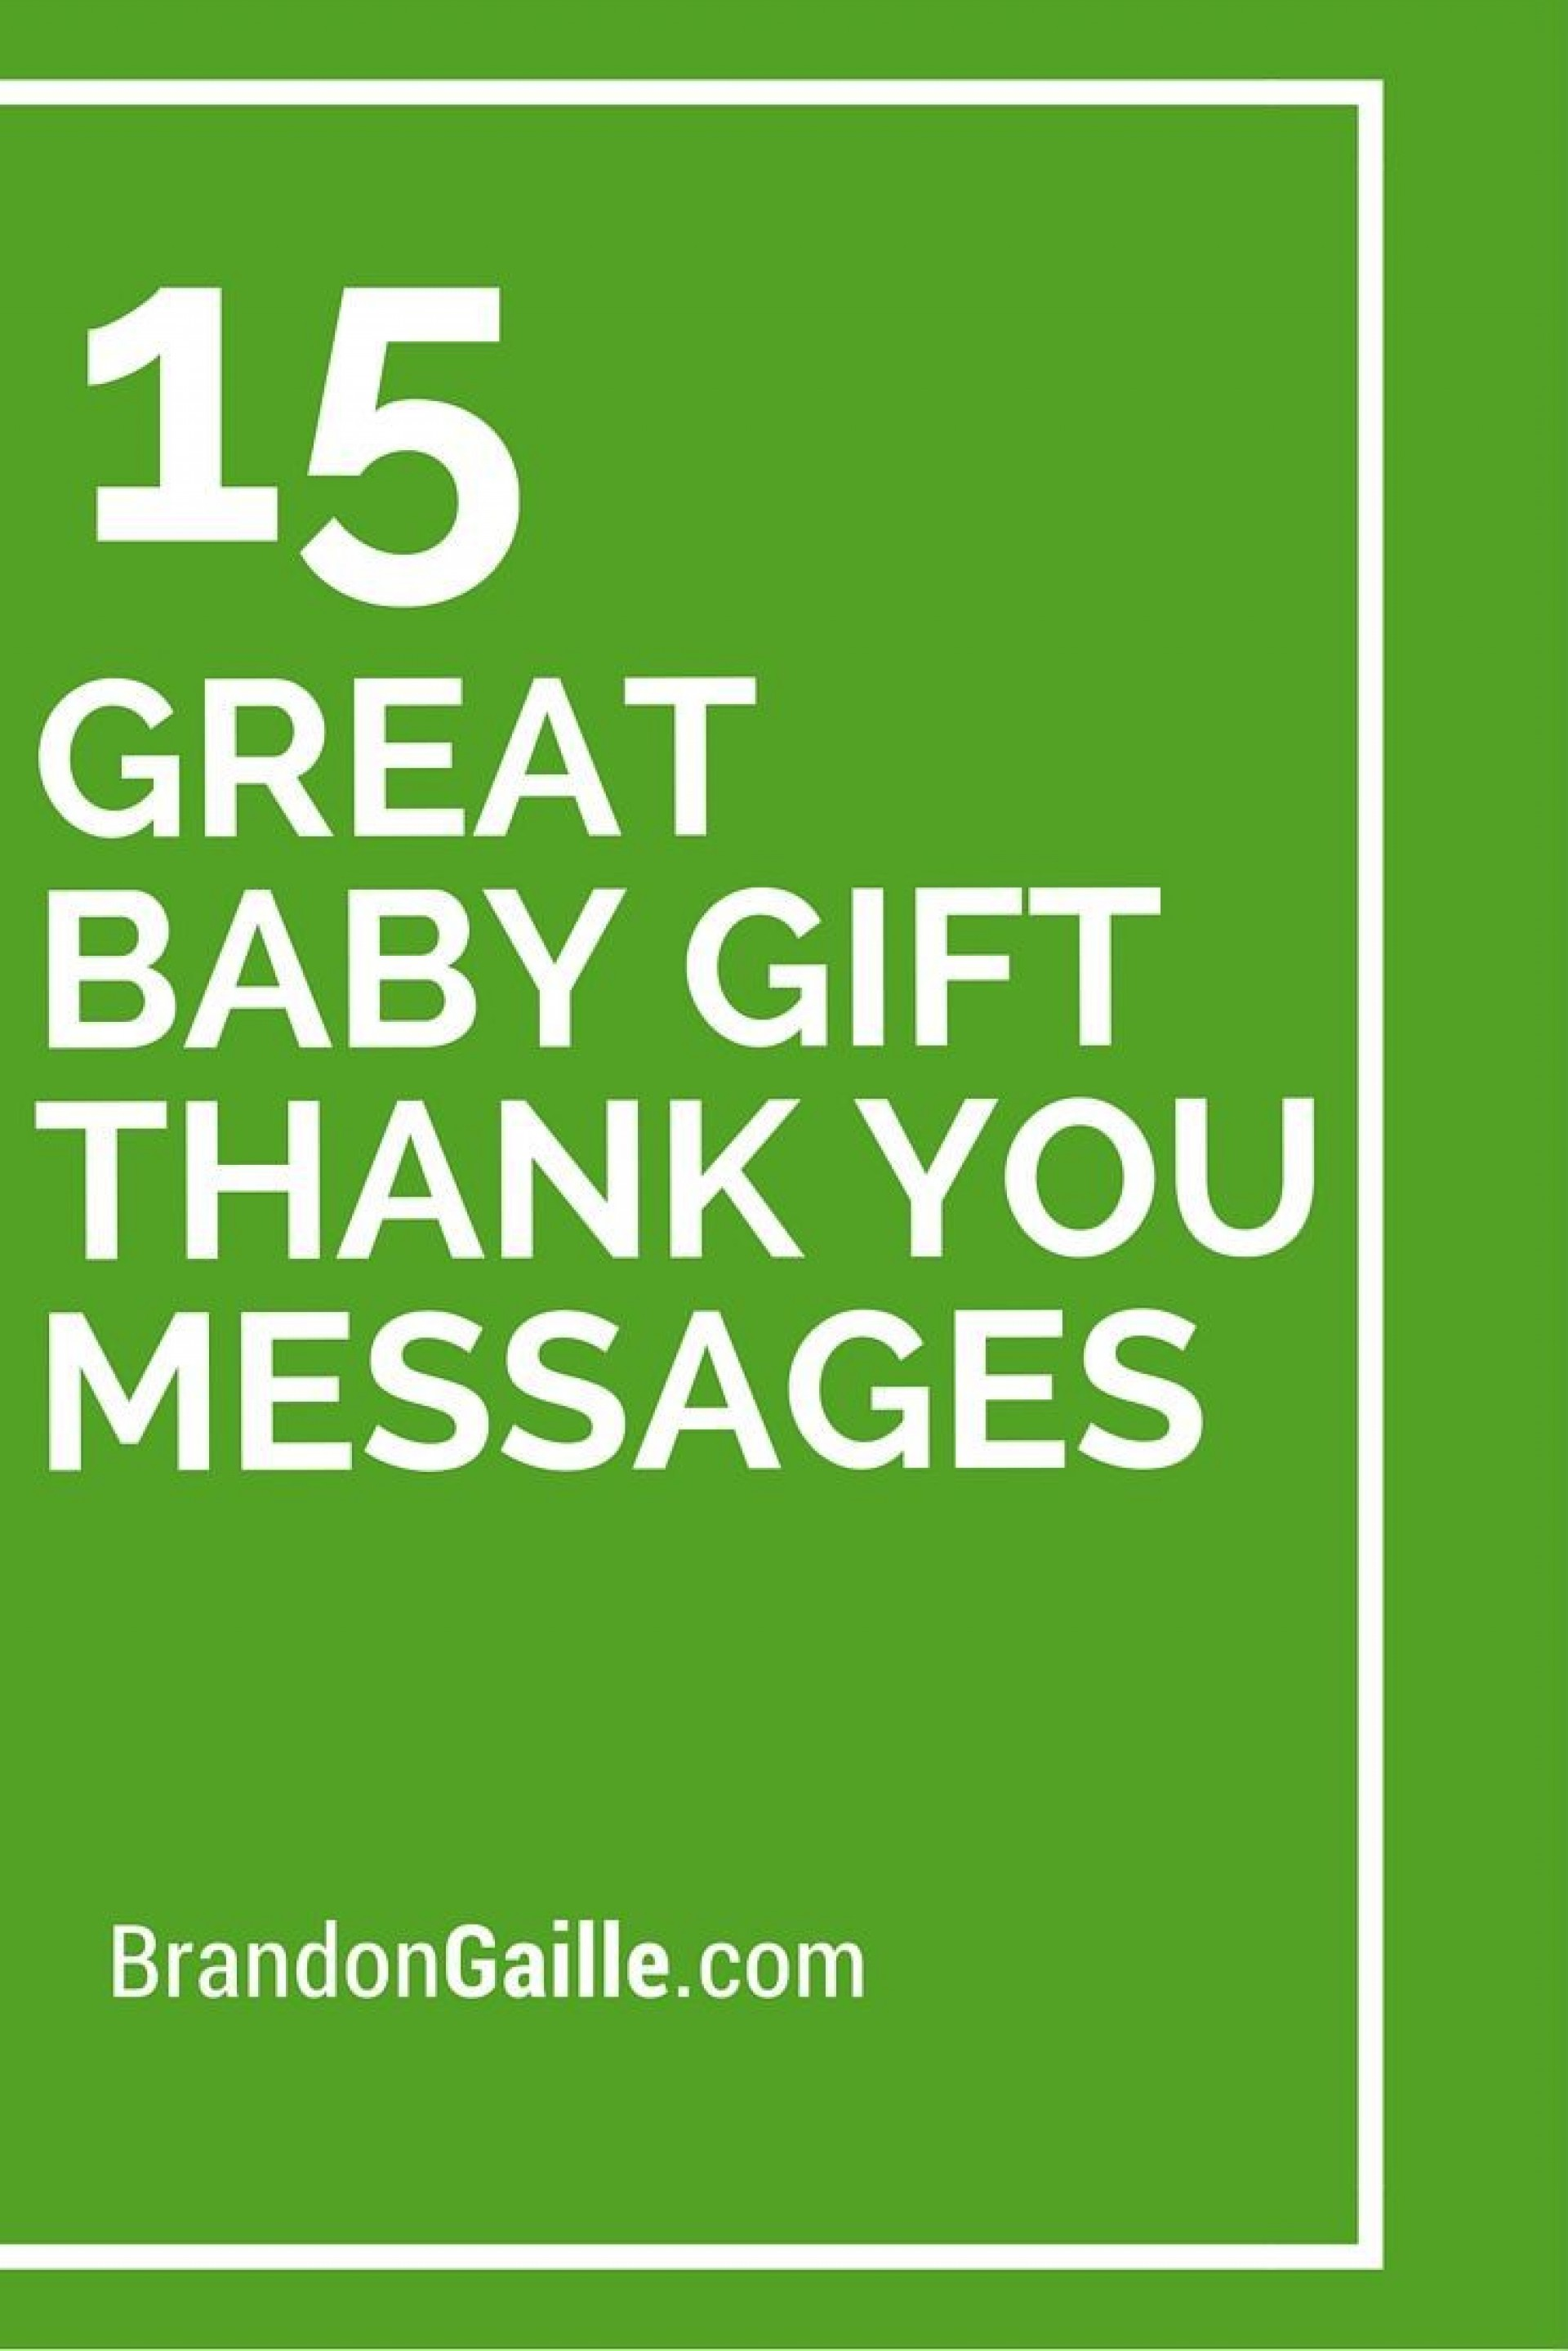 009 Simple Thank You Card Wording Baby Shower Gift Idea  For Multiple Group1920